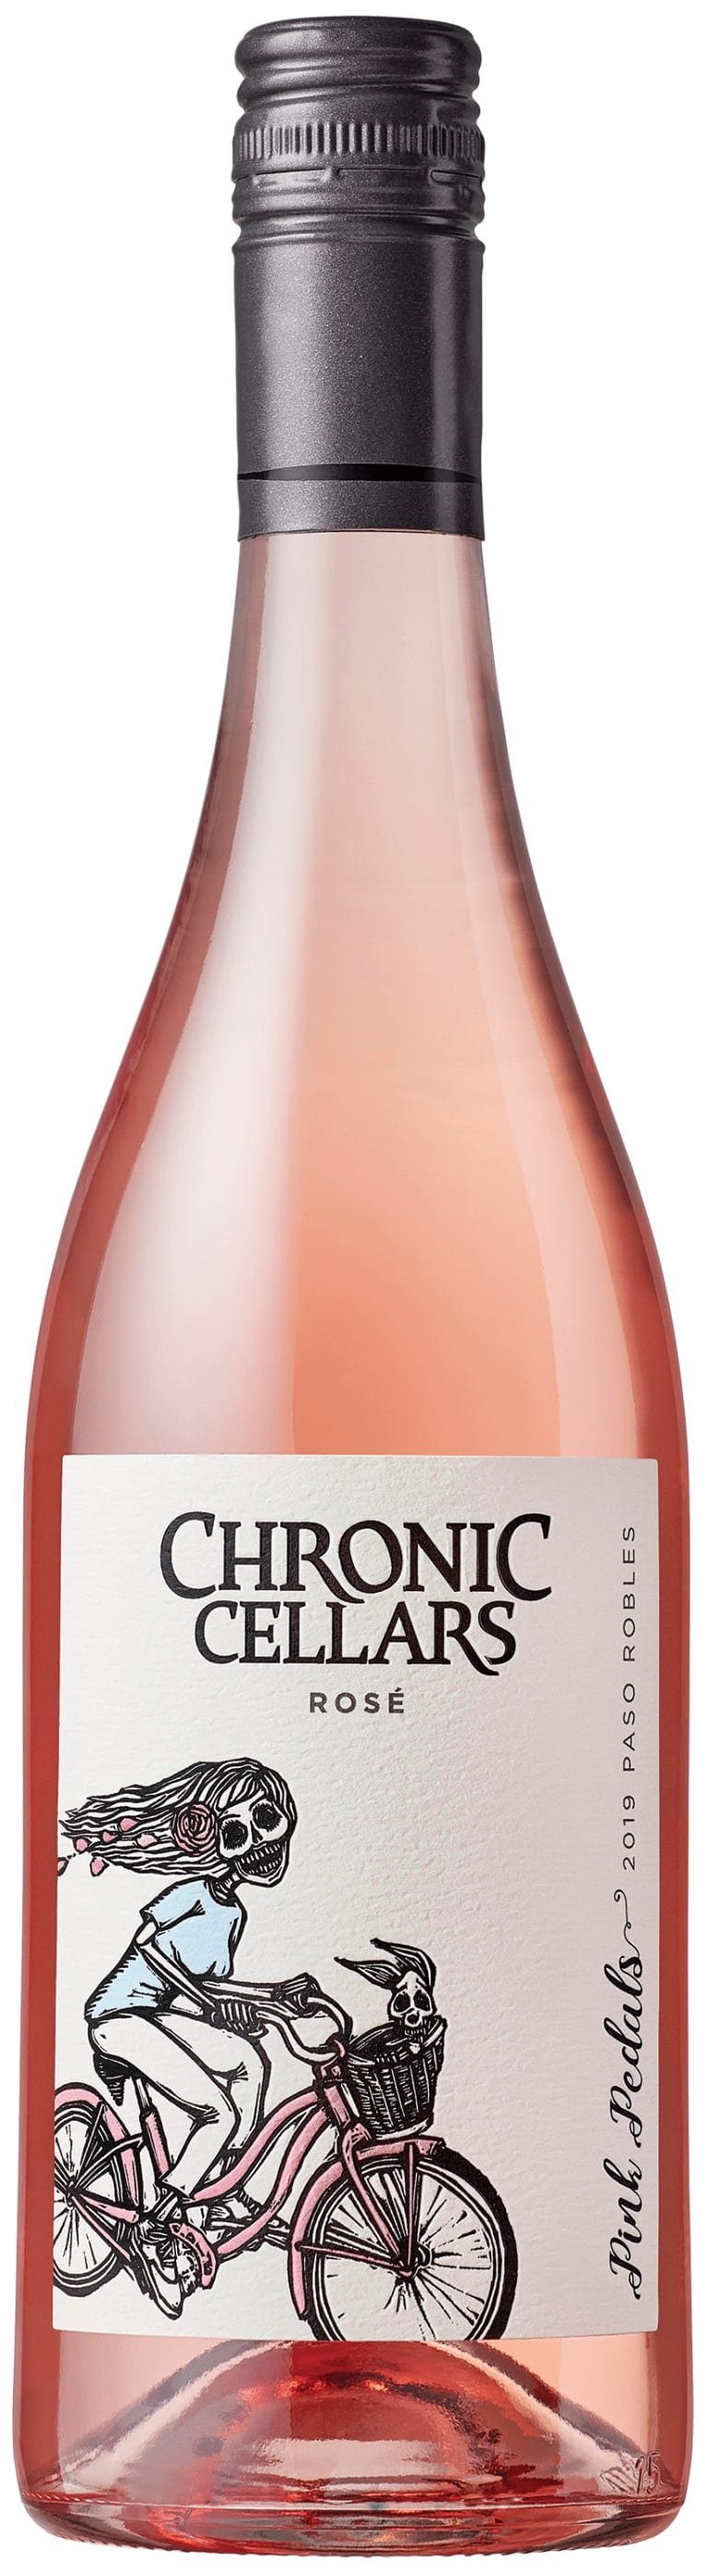 Chronic Cellars Pink Pedals 2019